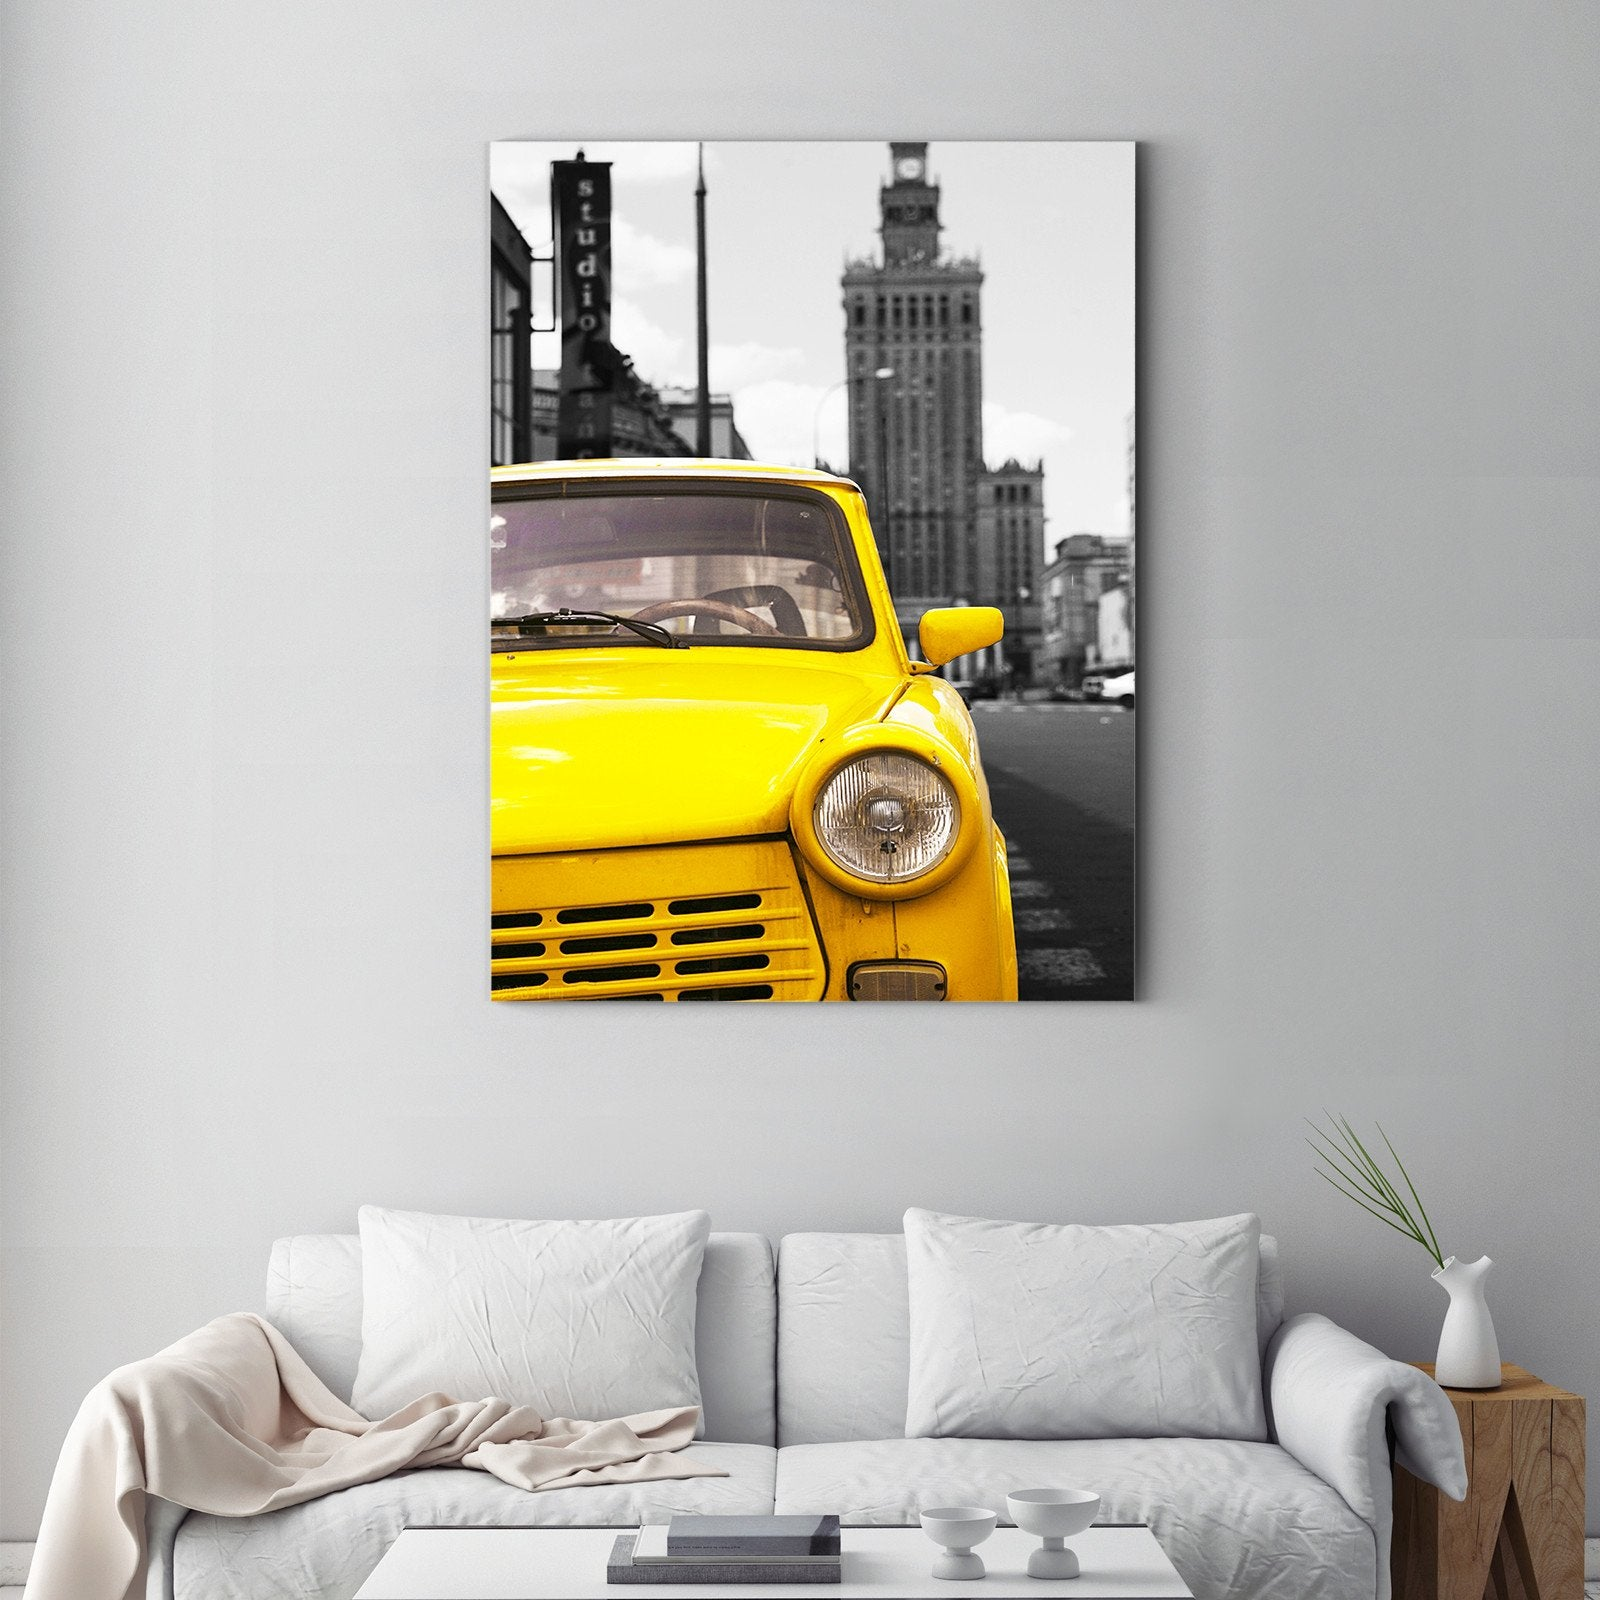 Retro style car - art deco painting - living room -Multi Panel Wall Art011